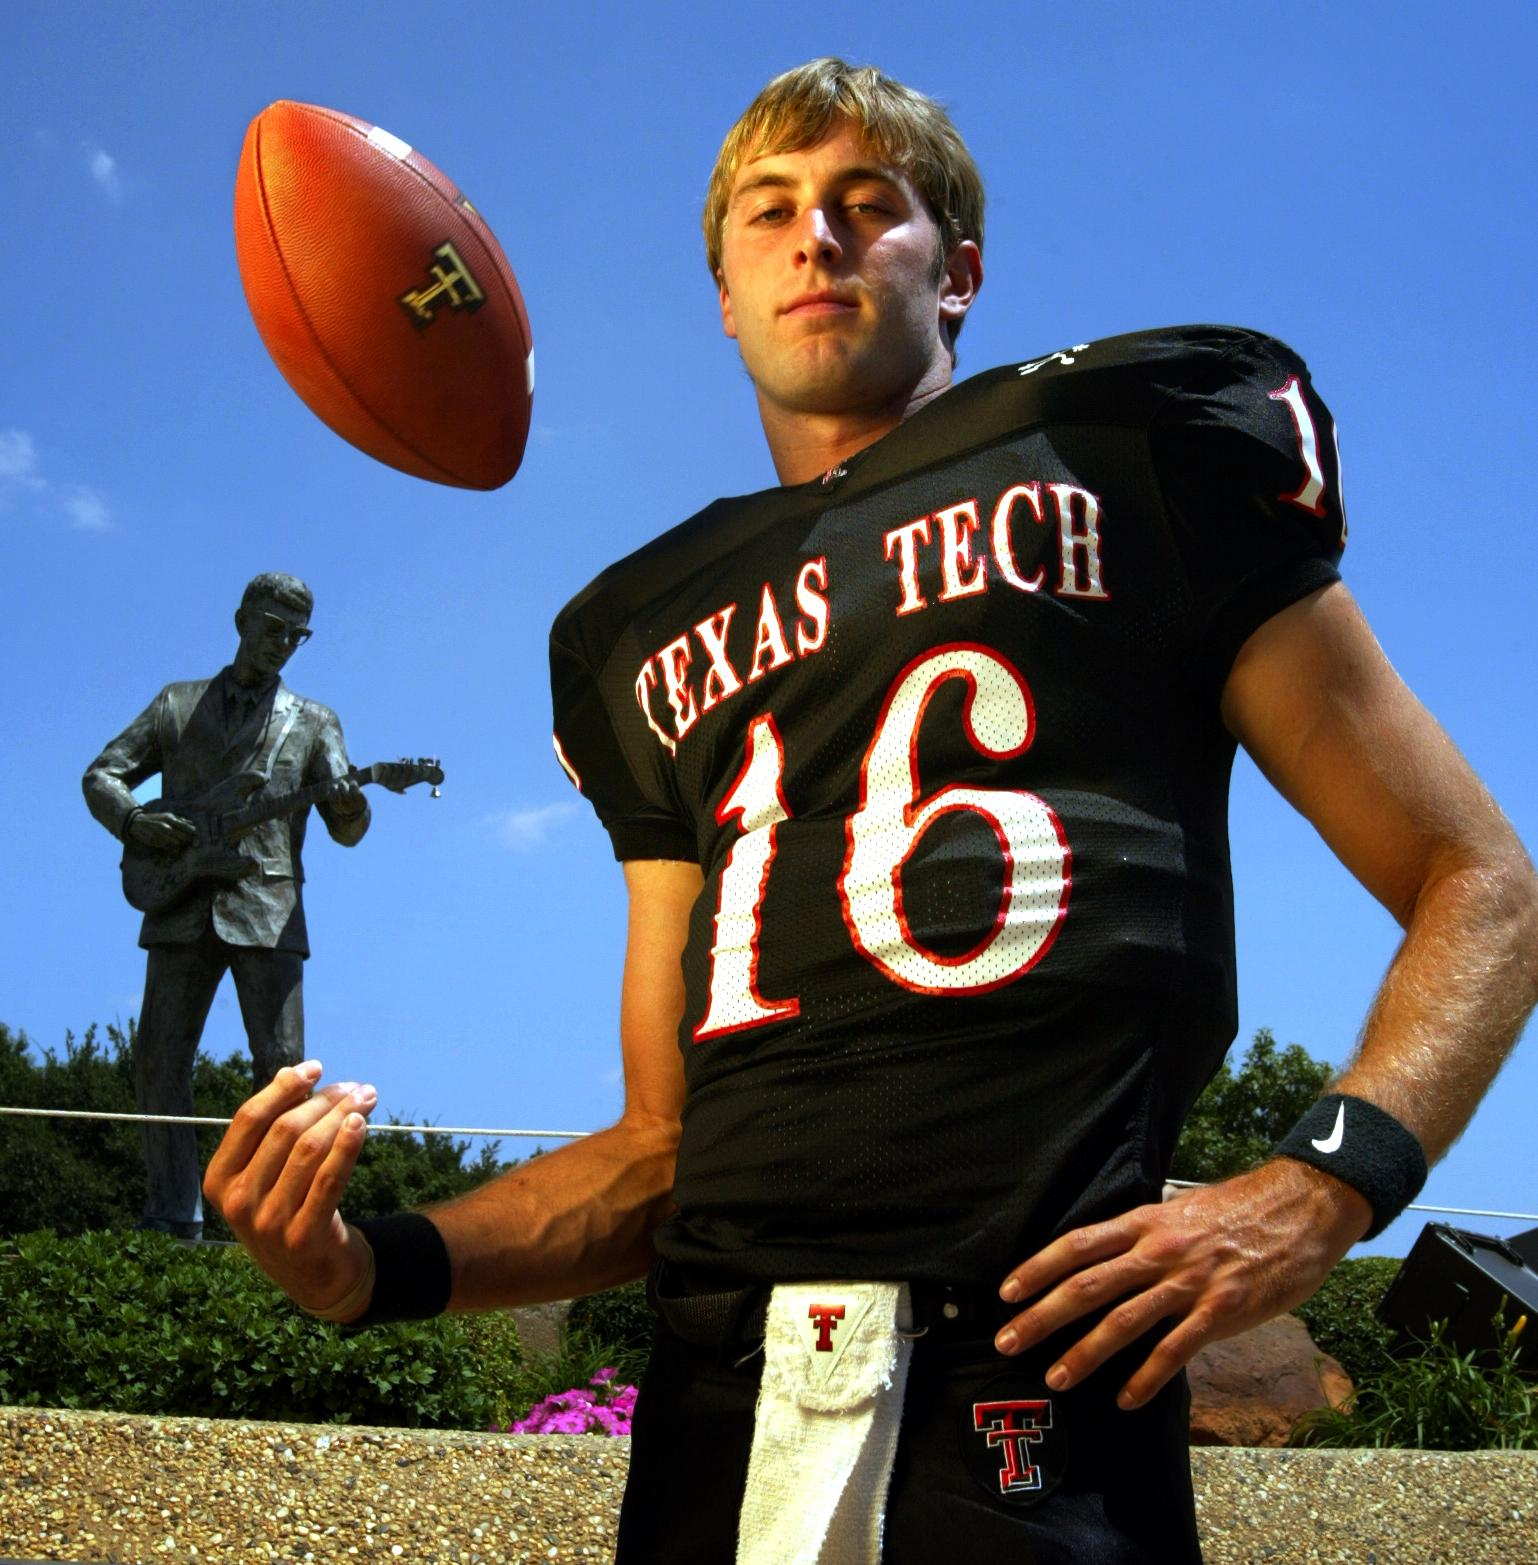 Kliff Kingsbury during his playing career in Texas Tech Red Raiders